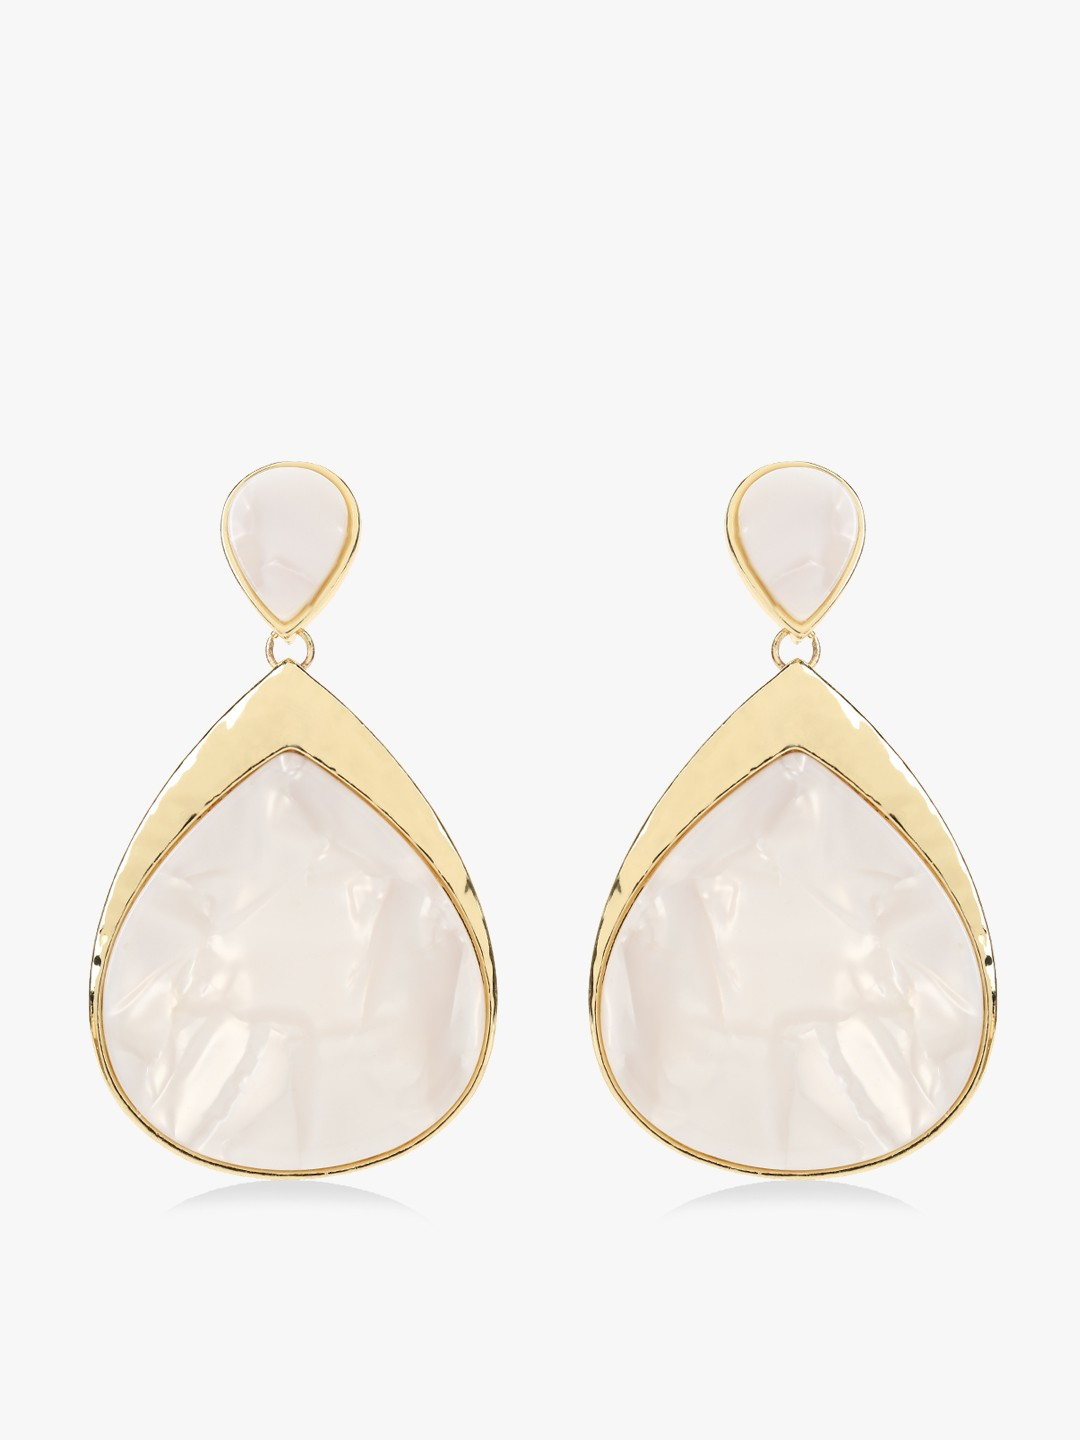 Zero Kaata White/Gold Marble Stone Drop Earrings 1